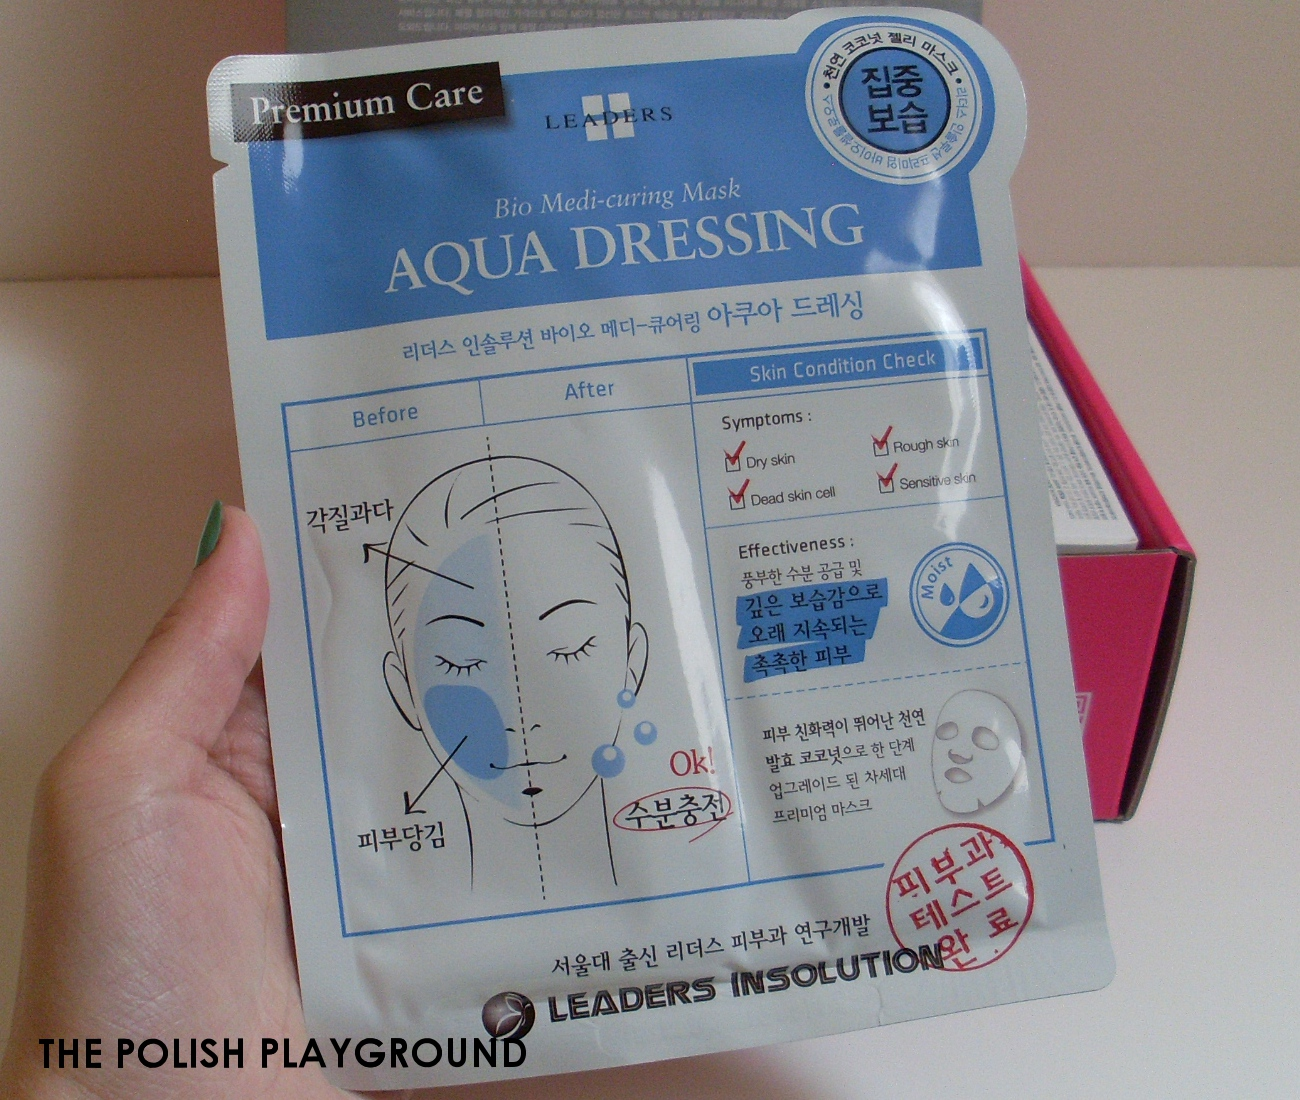 Memebox Luckybox #5 Unboxing - Leaders Insolution Mash Sheet BIO Medi-curing Mask - Aqua Dressing